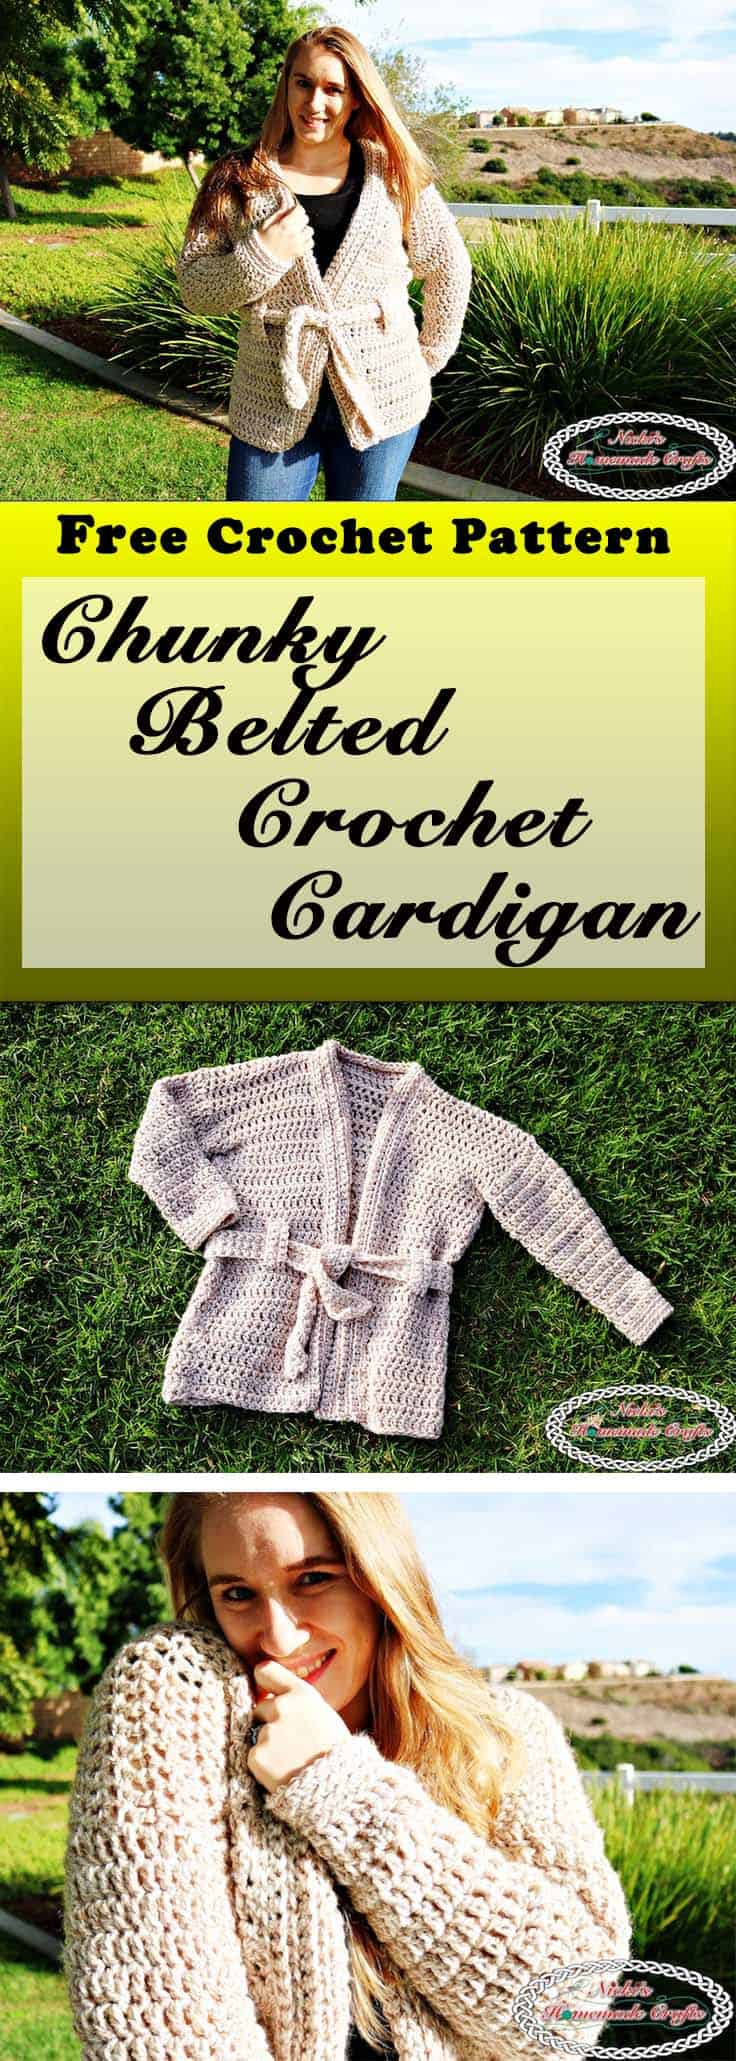 This Chunky Belted Crochet Cardigan is super soft and cozy and has a belt around it. It has a neutral color so it can be both man and women. Chunky Belted Crochet Cardigan - Free Crochet Pattern by Nicki's Homemade Crafts #crochet #cardigan #free #crochet #pattern #cardigan #chunky #belted #easy #fast